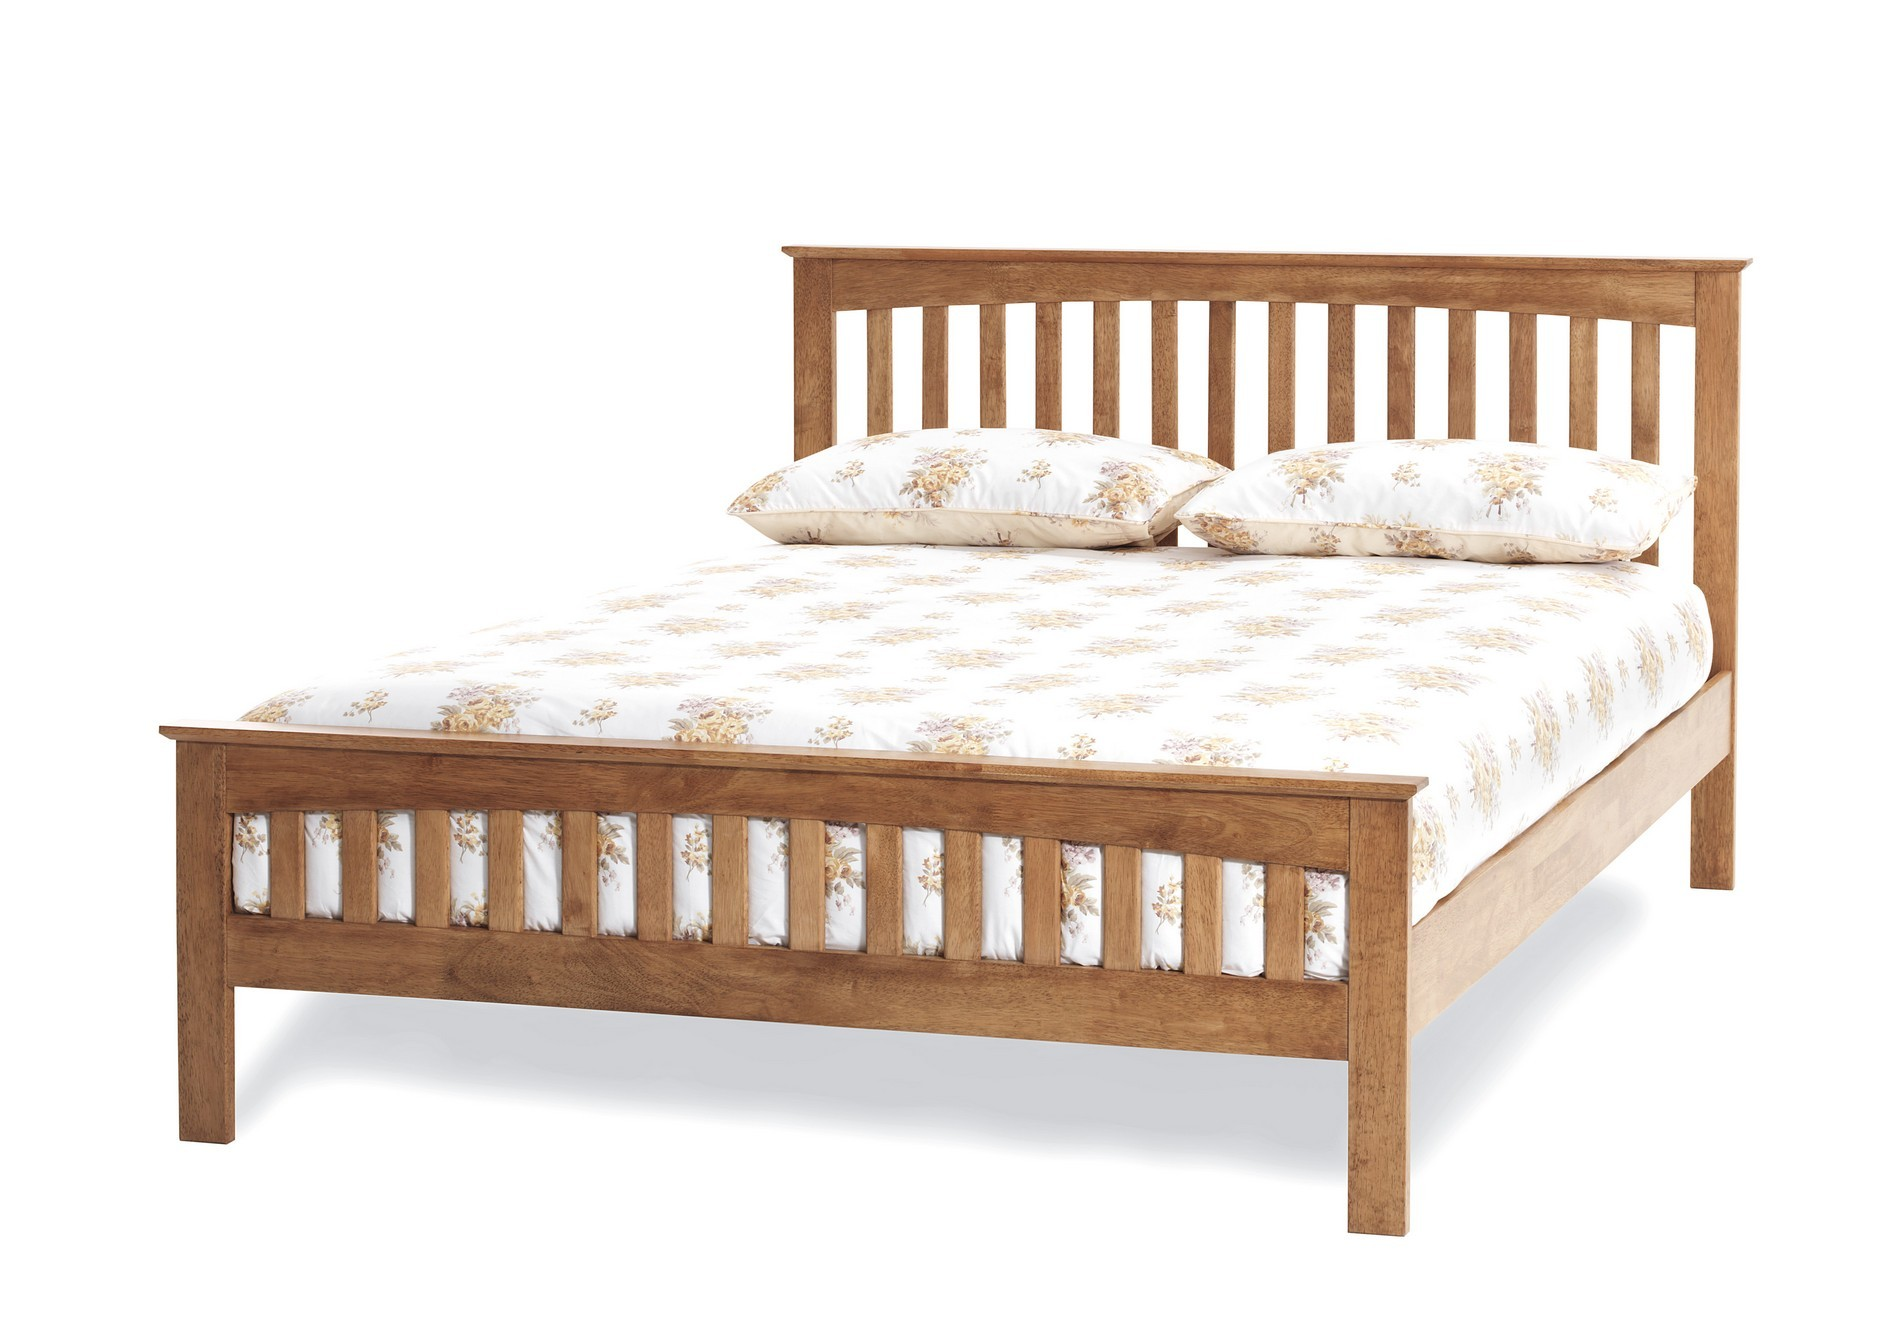 5ft King size Leah Oak finish wood frame bedstead